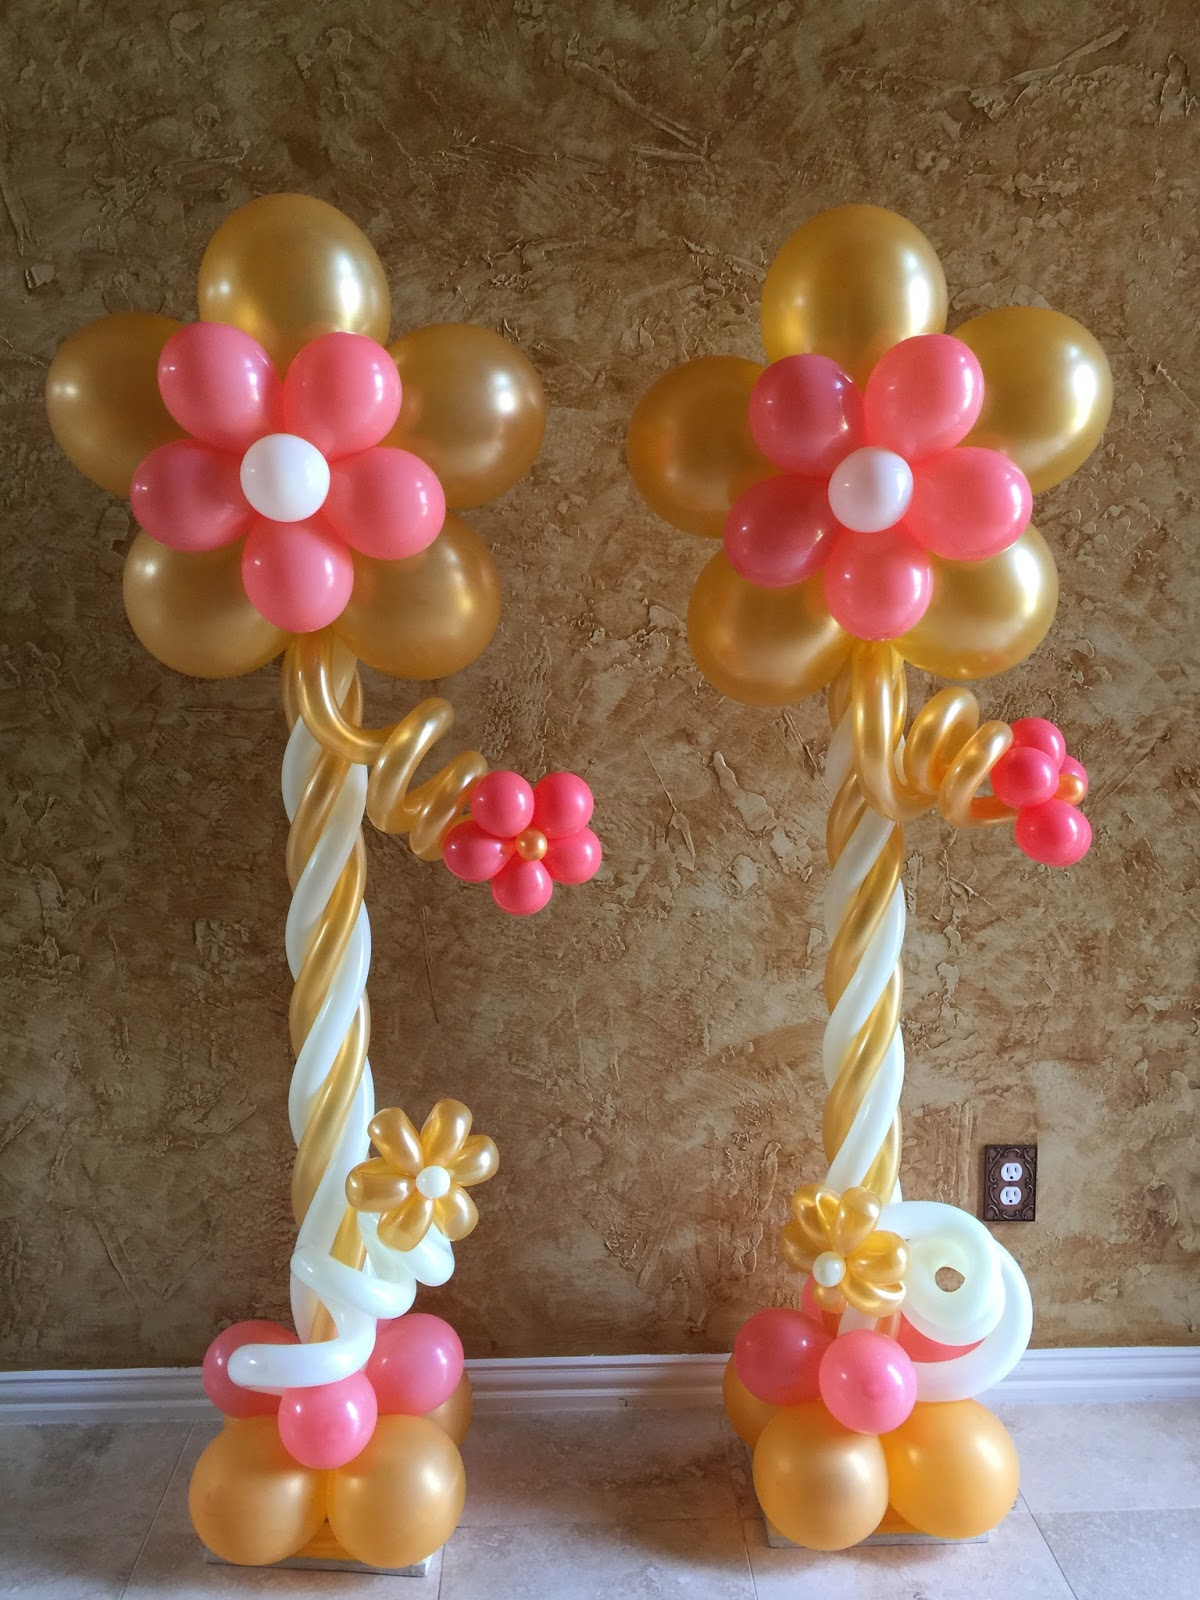 santo diamond balloon design flower balloons designs